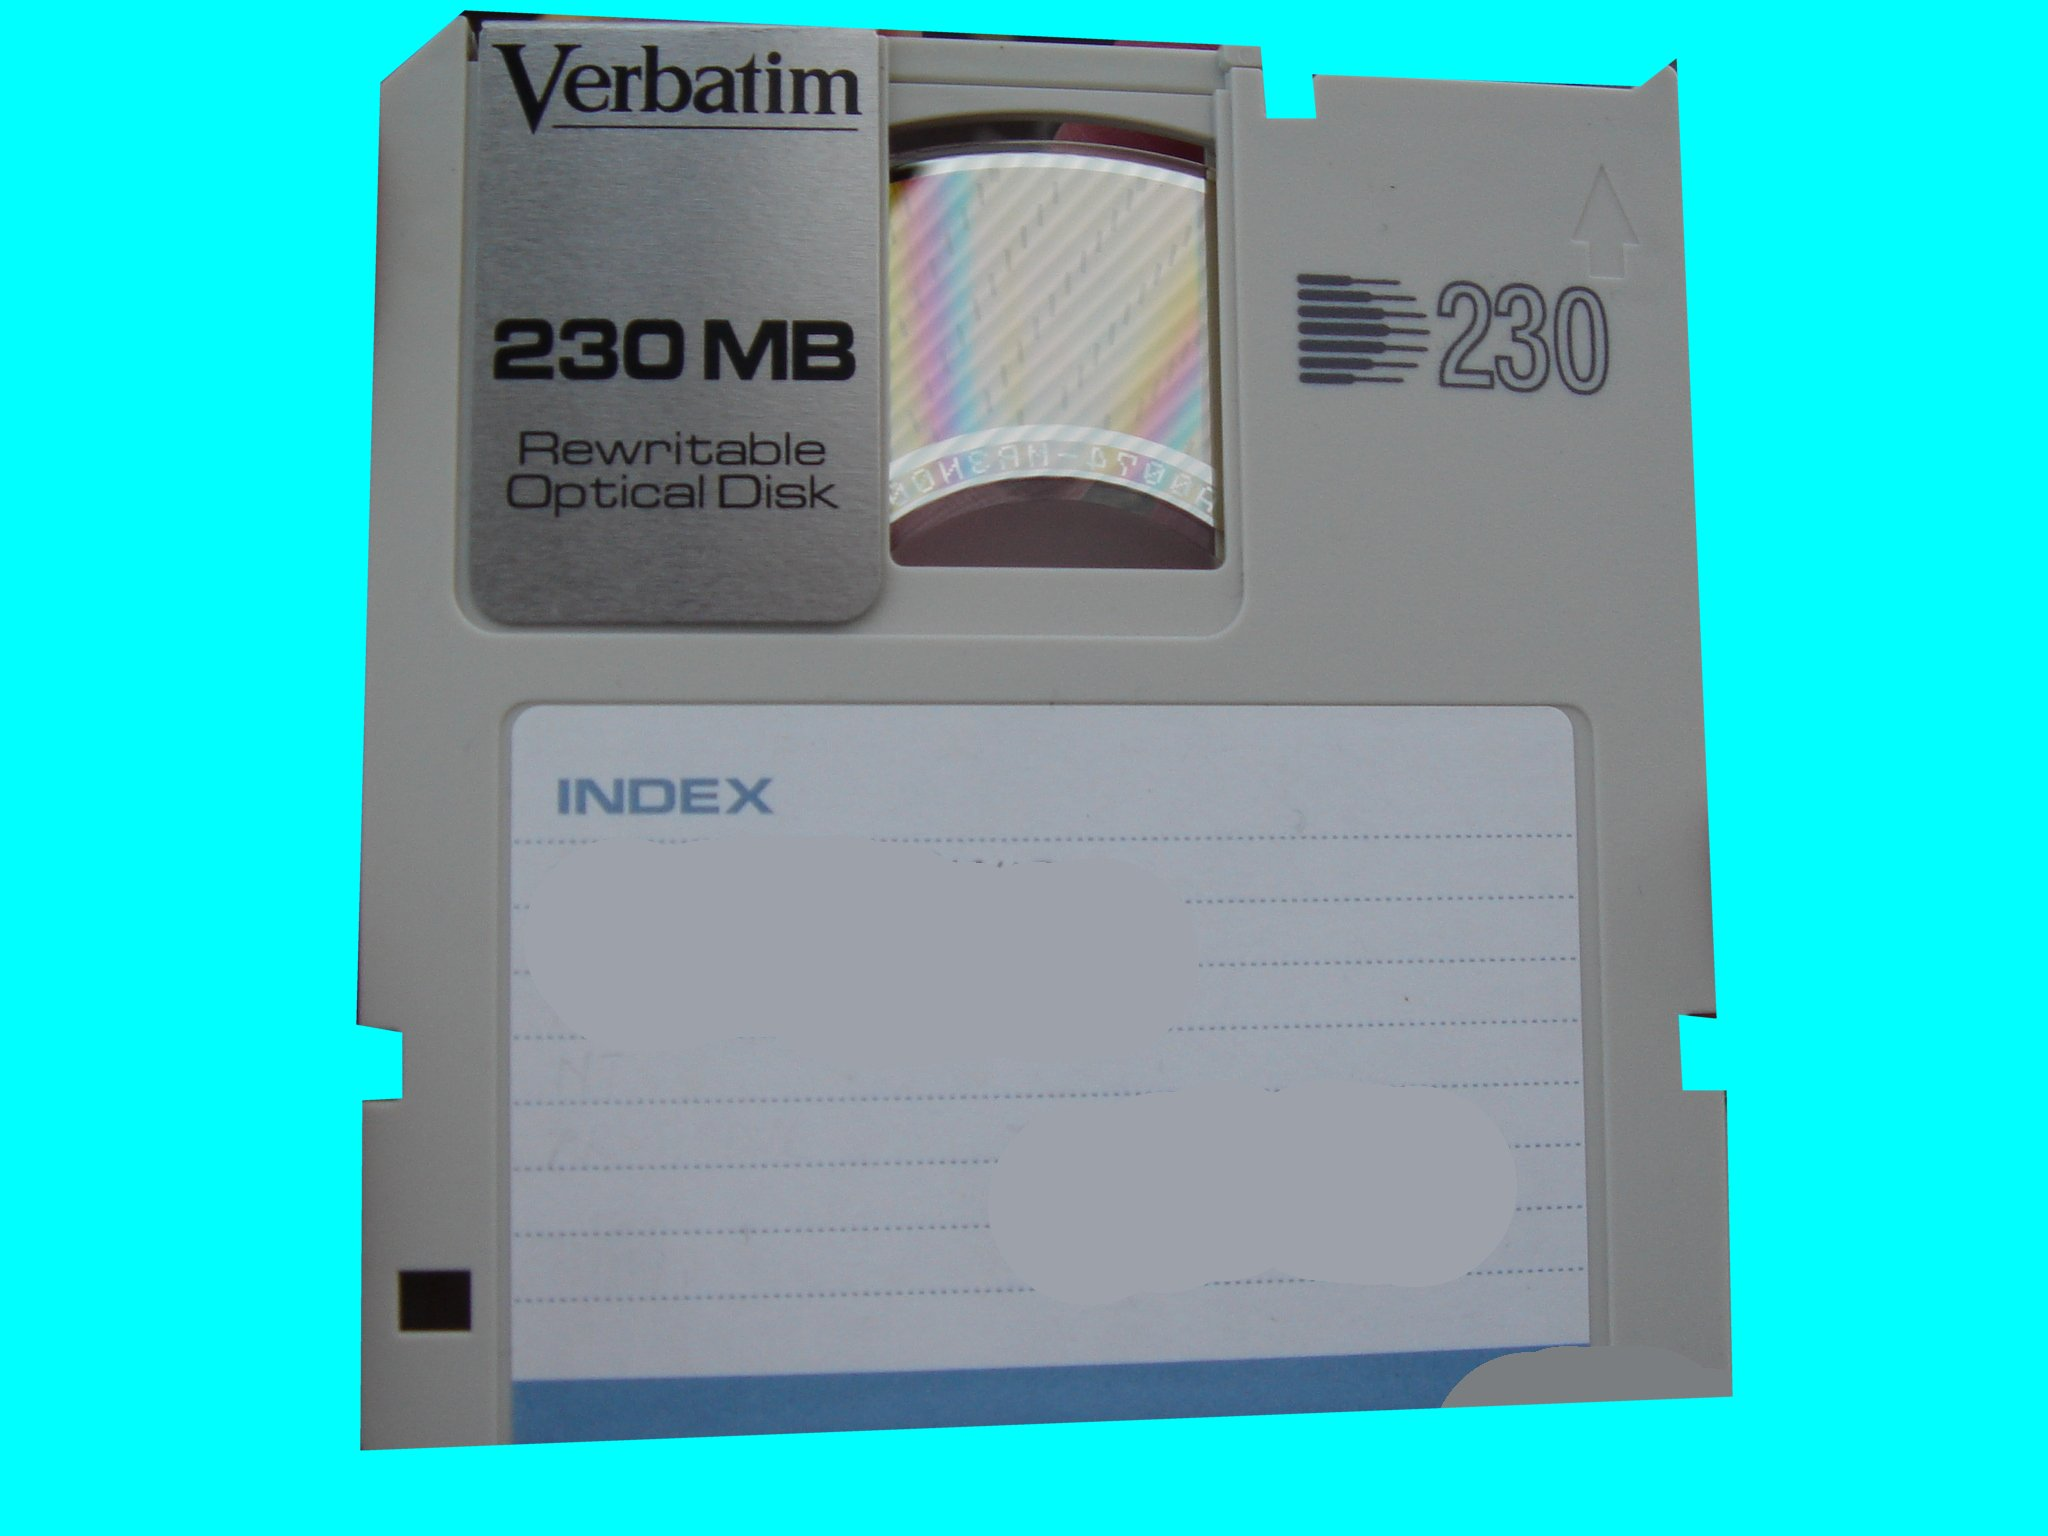 Gigamo optical disk recovering missing files.